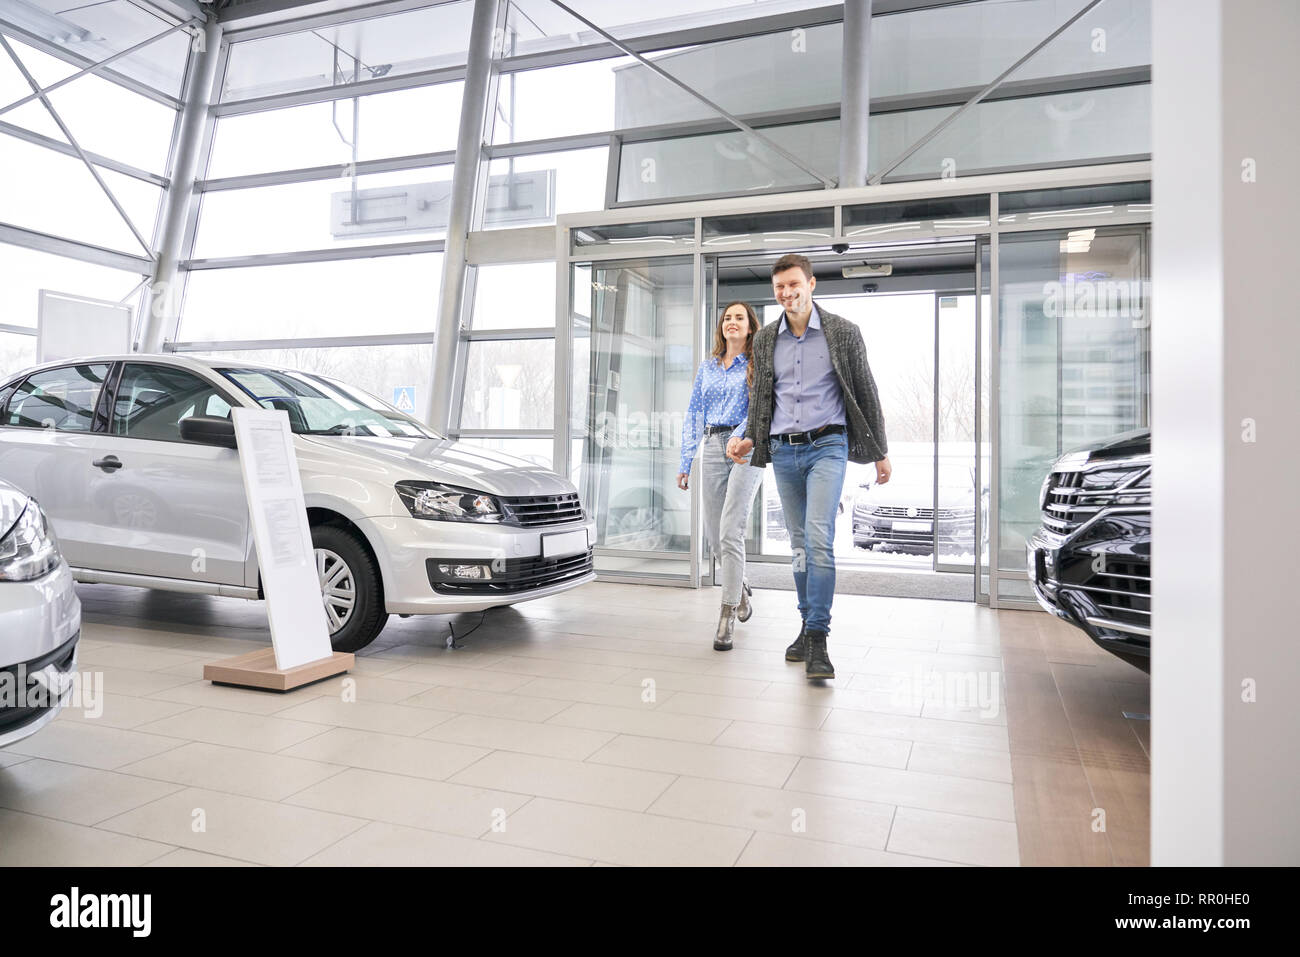 Beautiful couple walking in dealership showroom, holding hands and going. Charming woman and beautiful man smiling, posing and observing automobiles in car center. - Stock Image